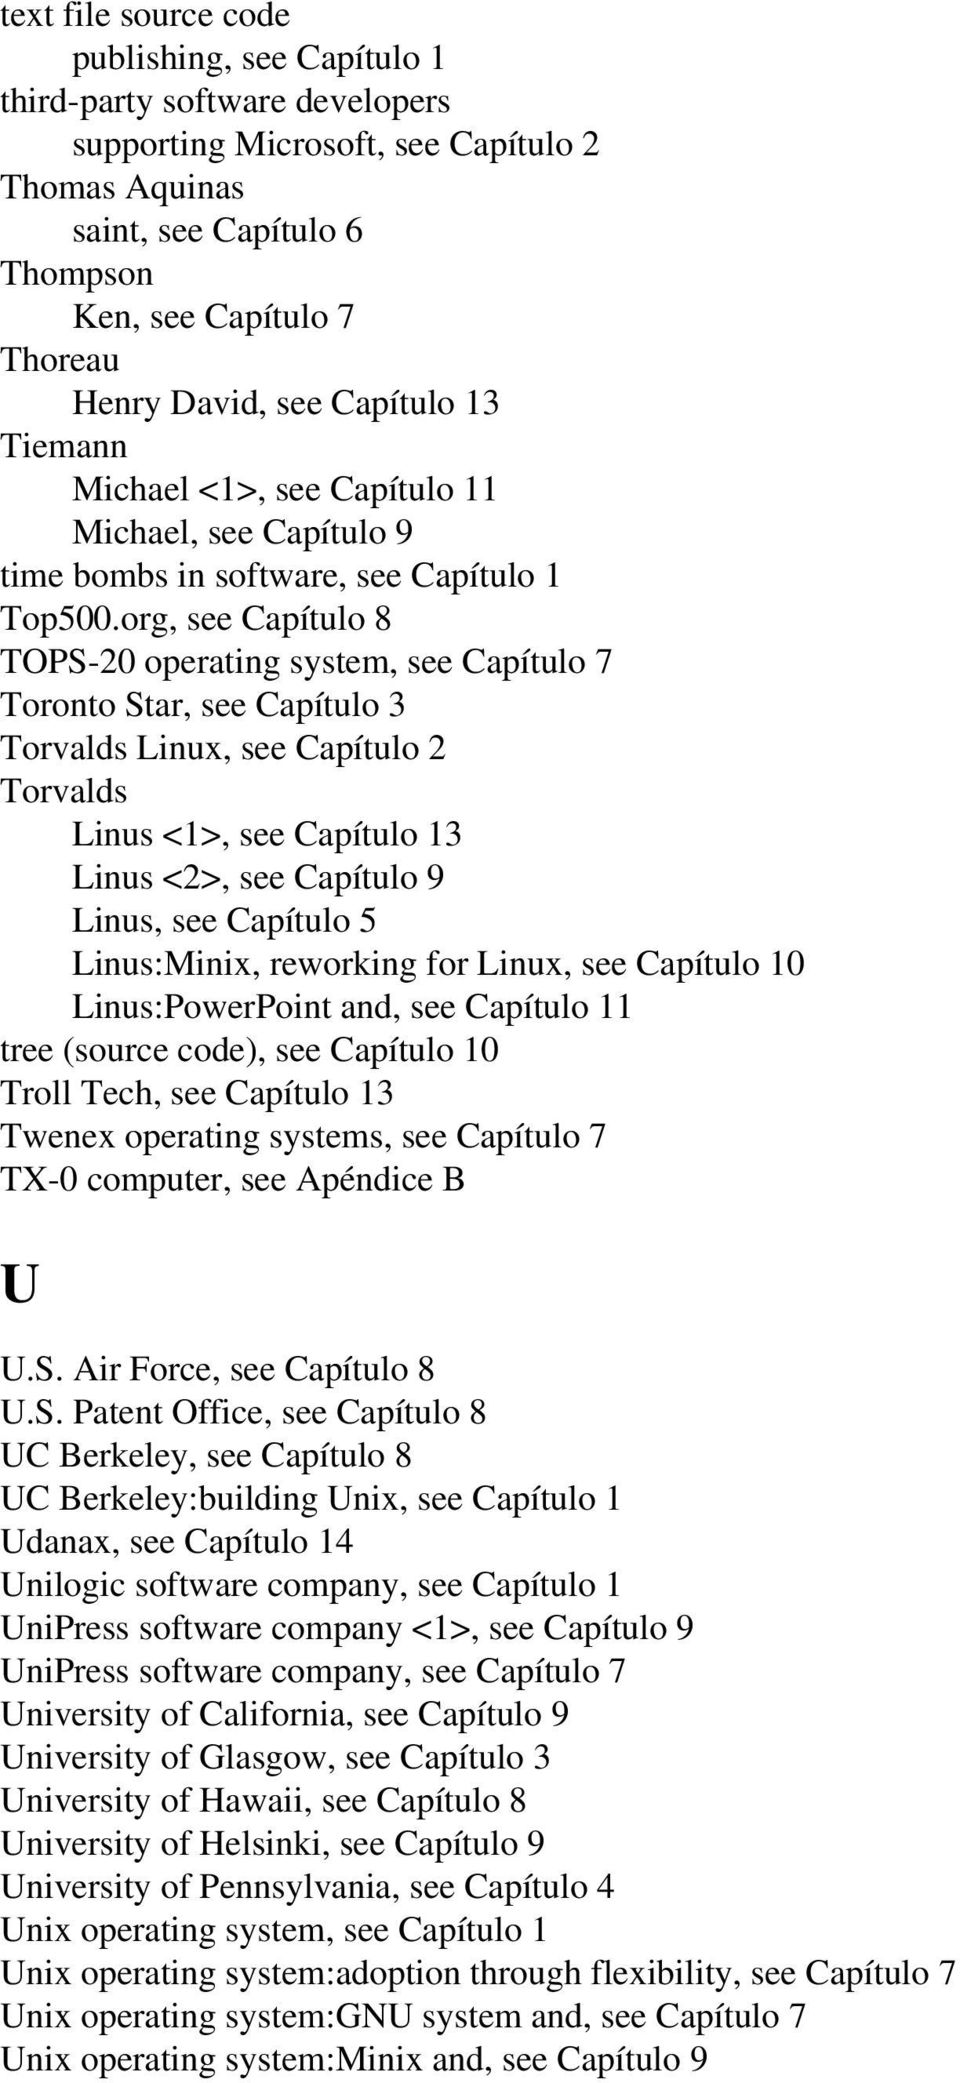 org, see Capítulo 8 TOPS-20 operating system, see Capítulo 7 Toronto Star, see Capítulo 3 Torvalds Linux, see Capítulo 2 Torvalds Linus <1>, see Capítulo 13 Linus <2>, see Capítulo 9 Linus, see